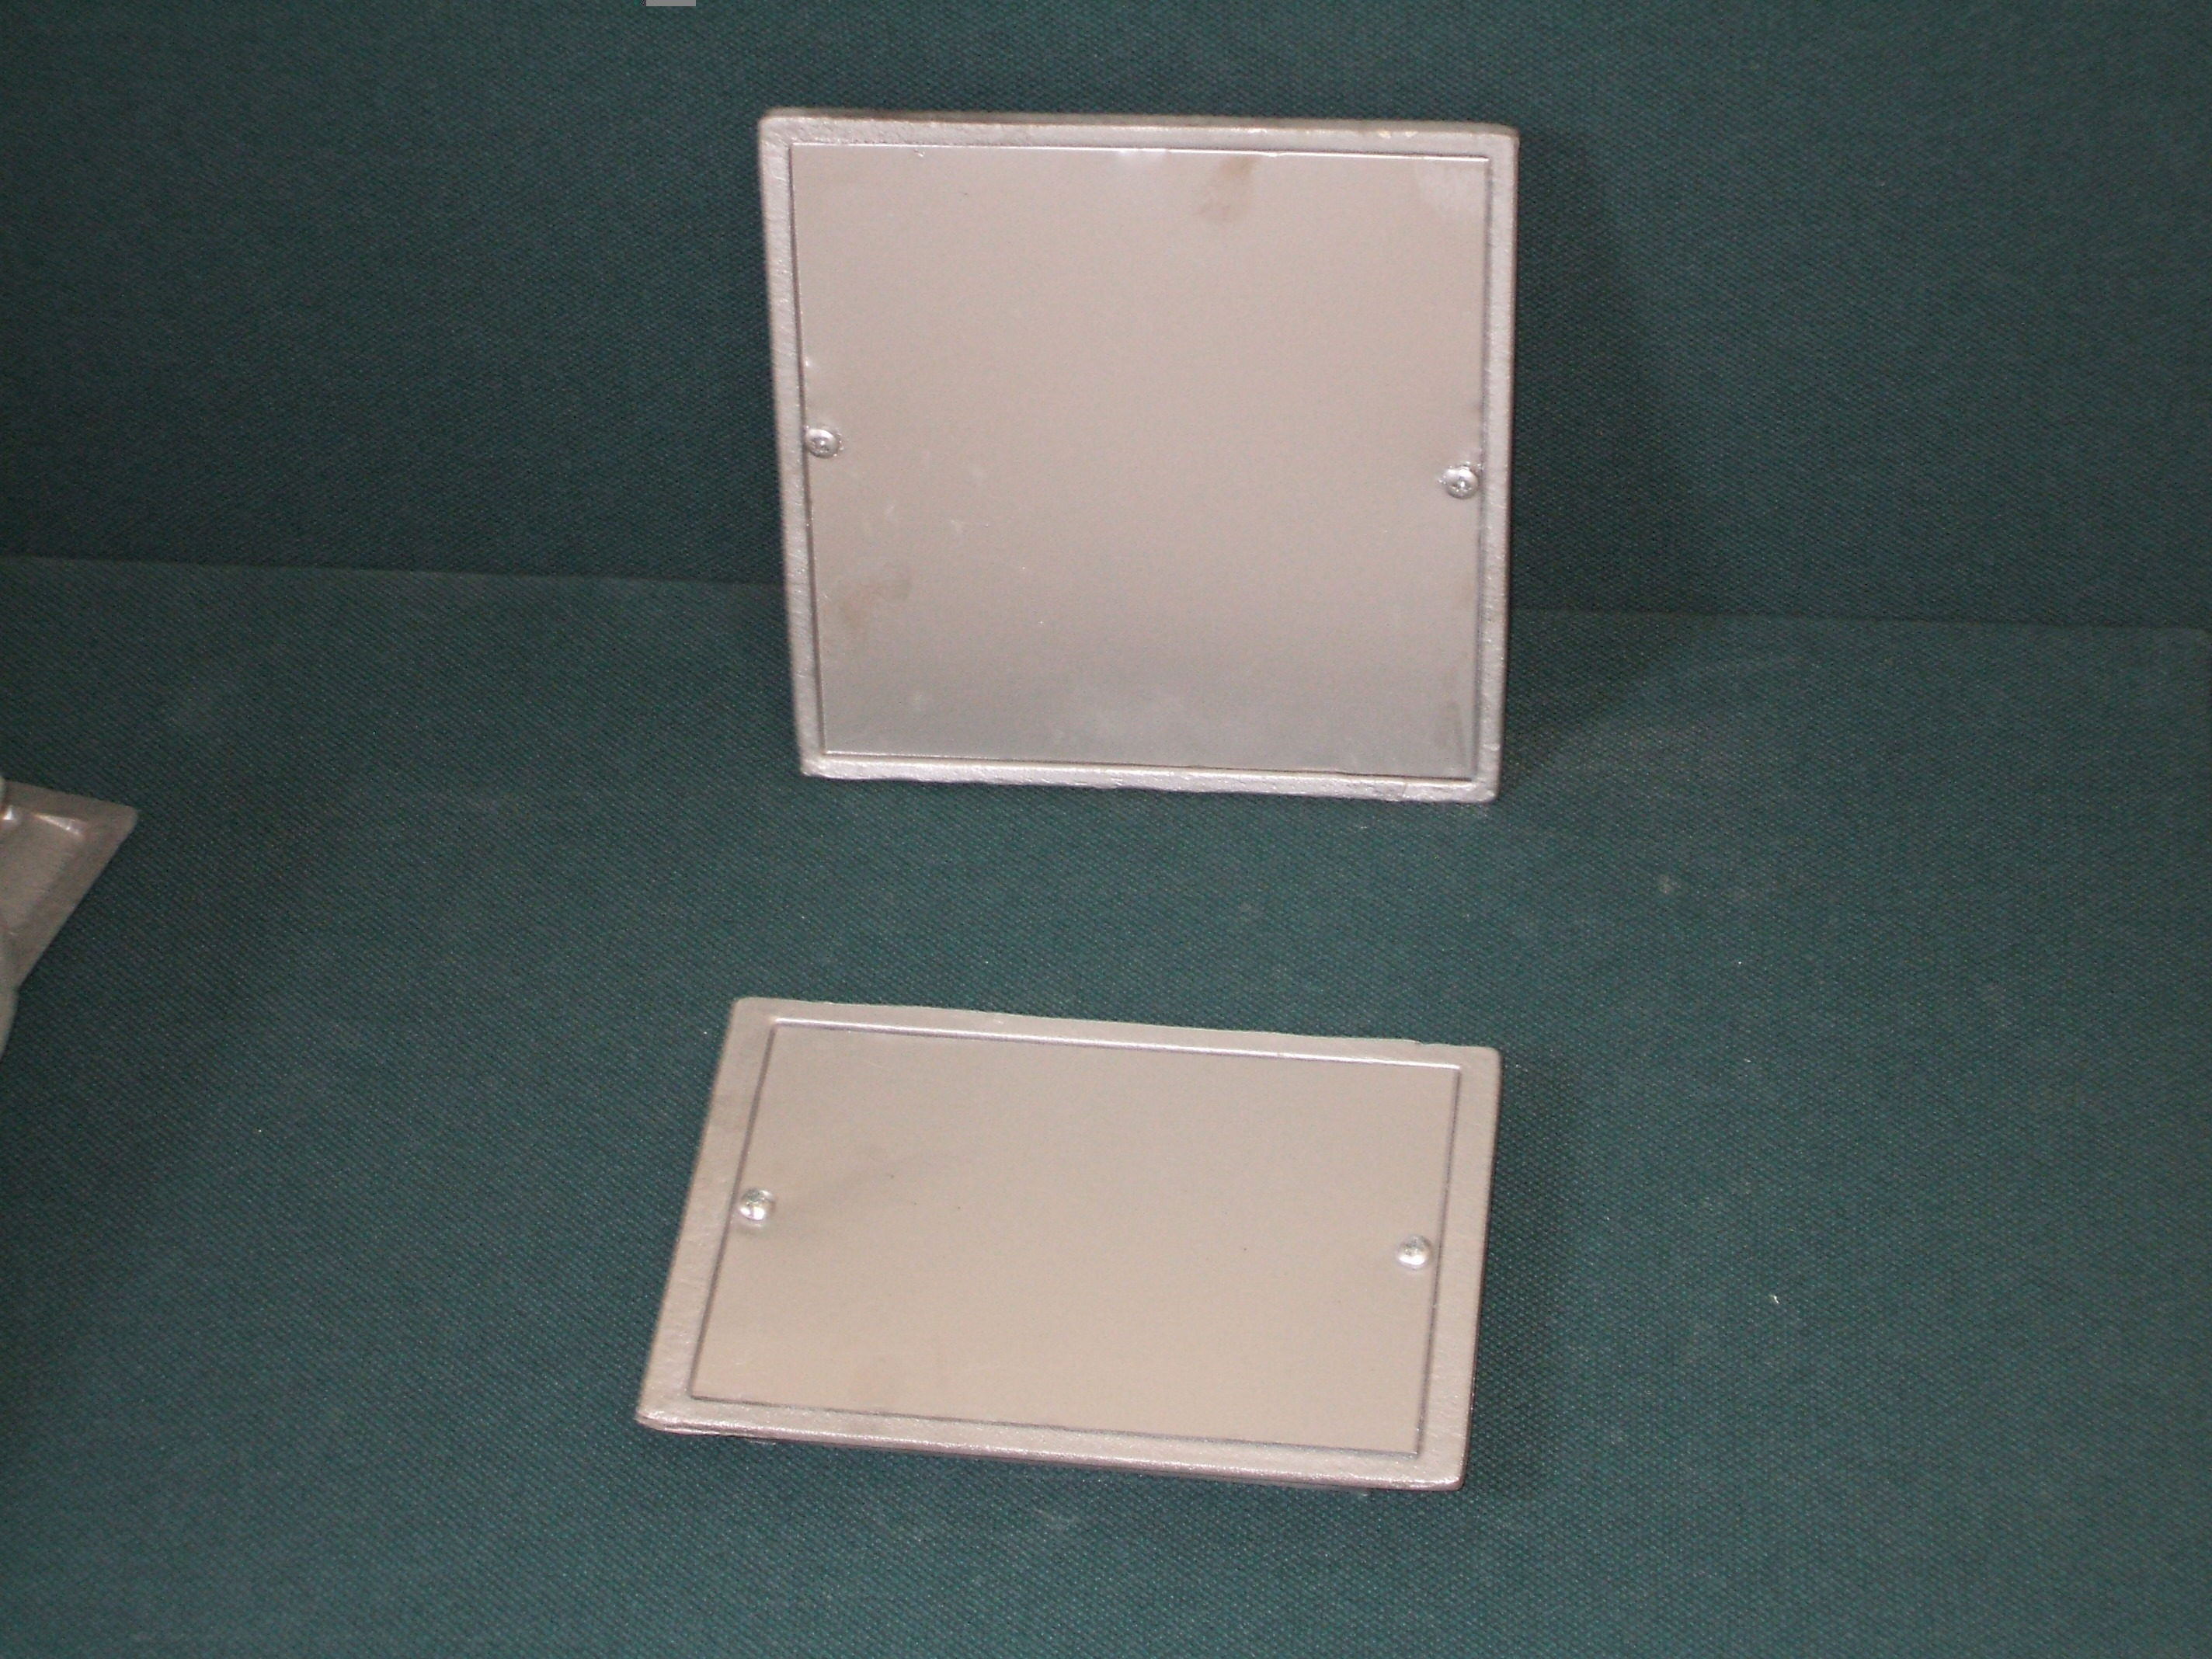 9 x 9 u0026 9 x 6 soot boxes & Aluminium Die Castings|Soot Box Door | Adamstown Engineering pezcame.com